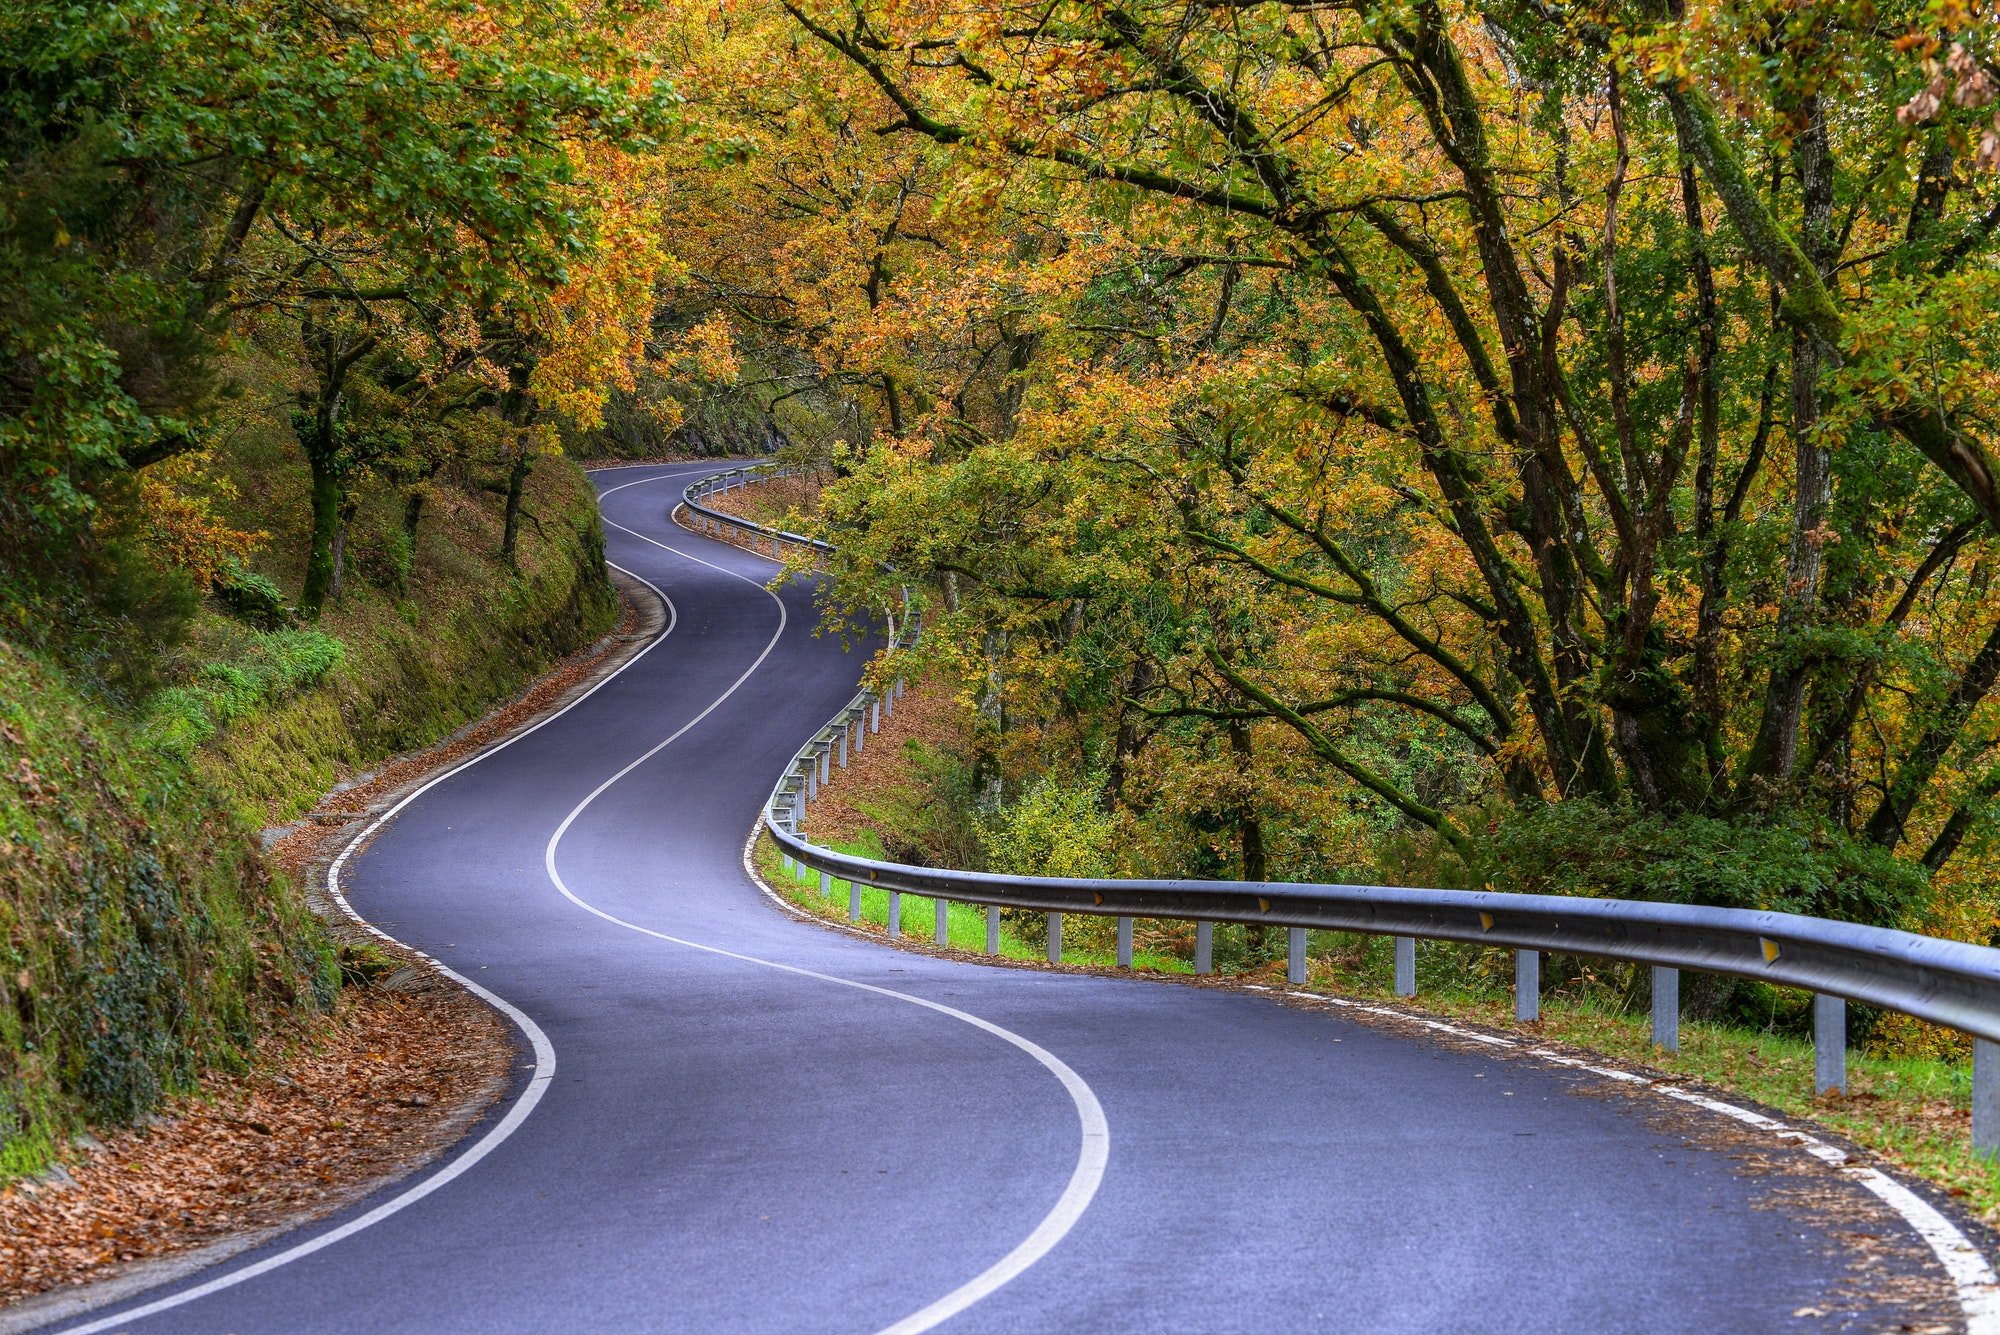 Curvy Road crosses a Lush Autumn Forest